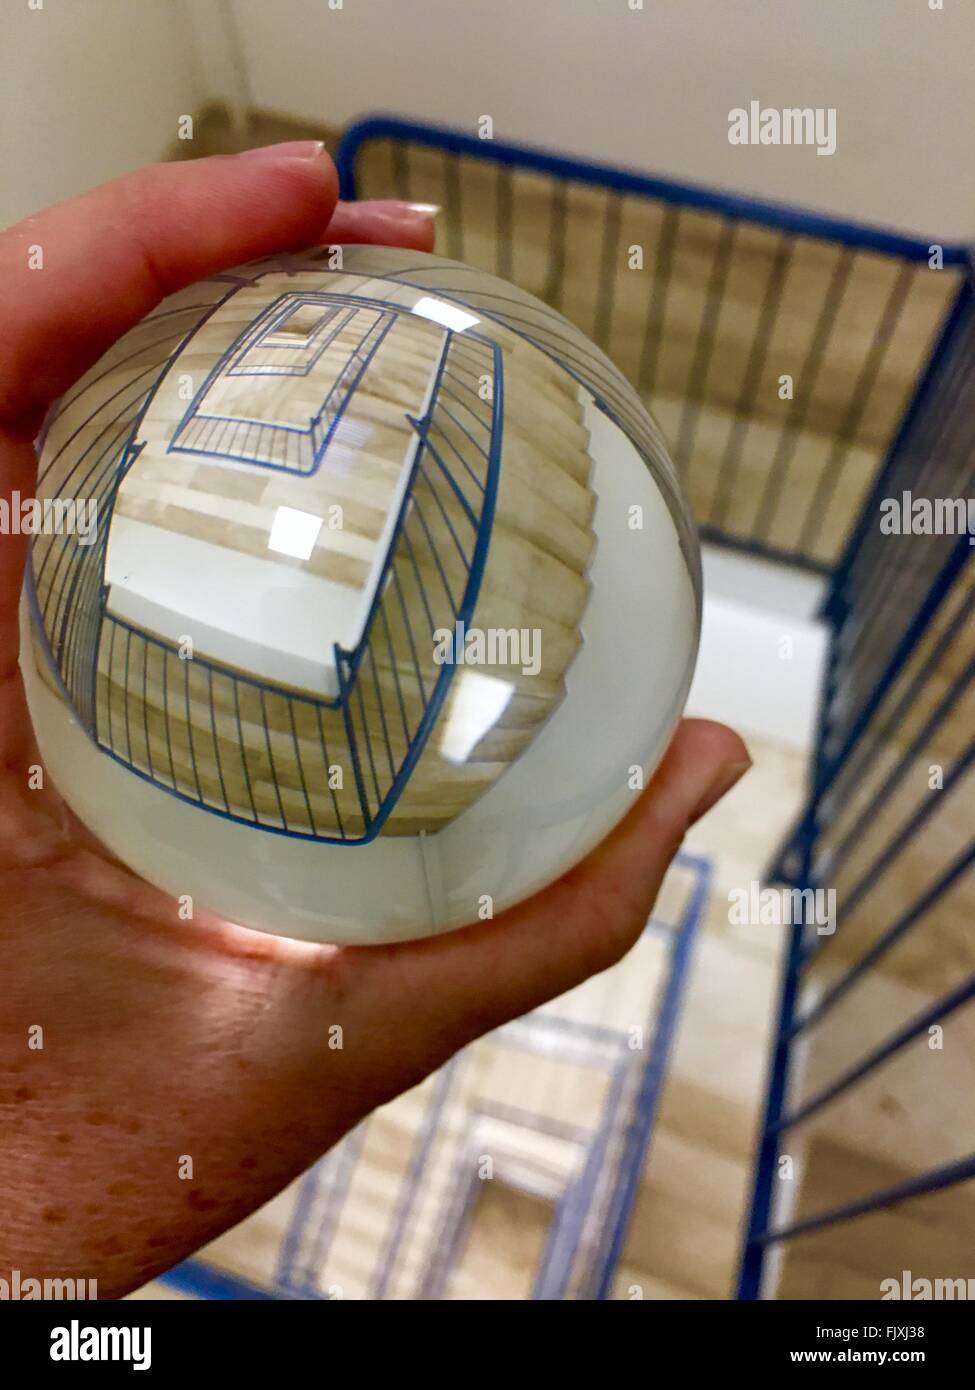 Cropped Image Of Person Holding Crystal Ball With Reflection Of Spiral Staircase - Stock Image